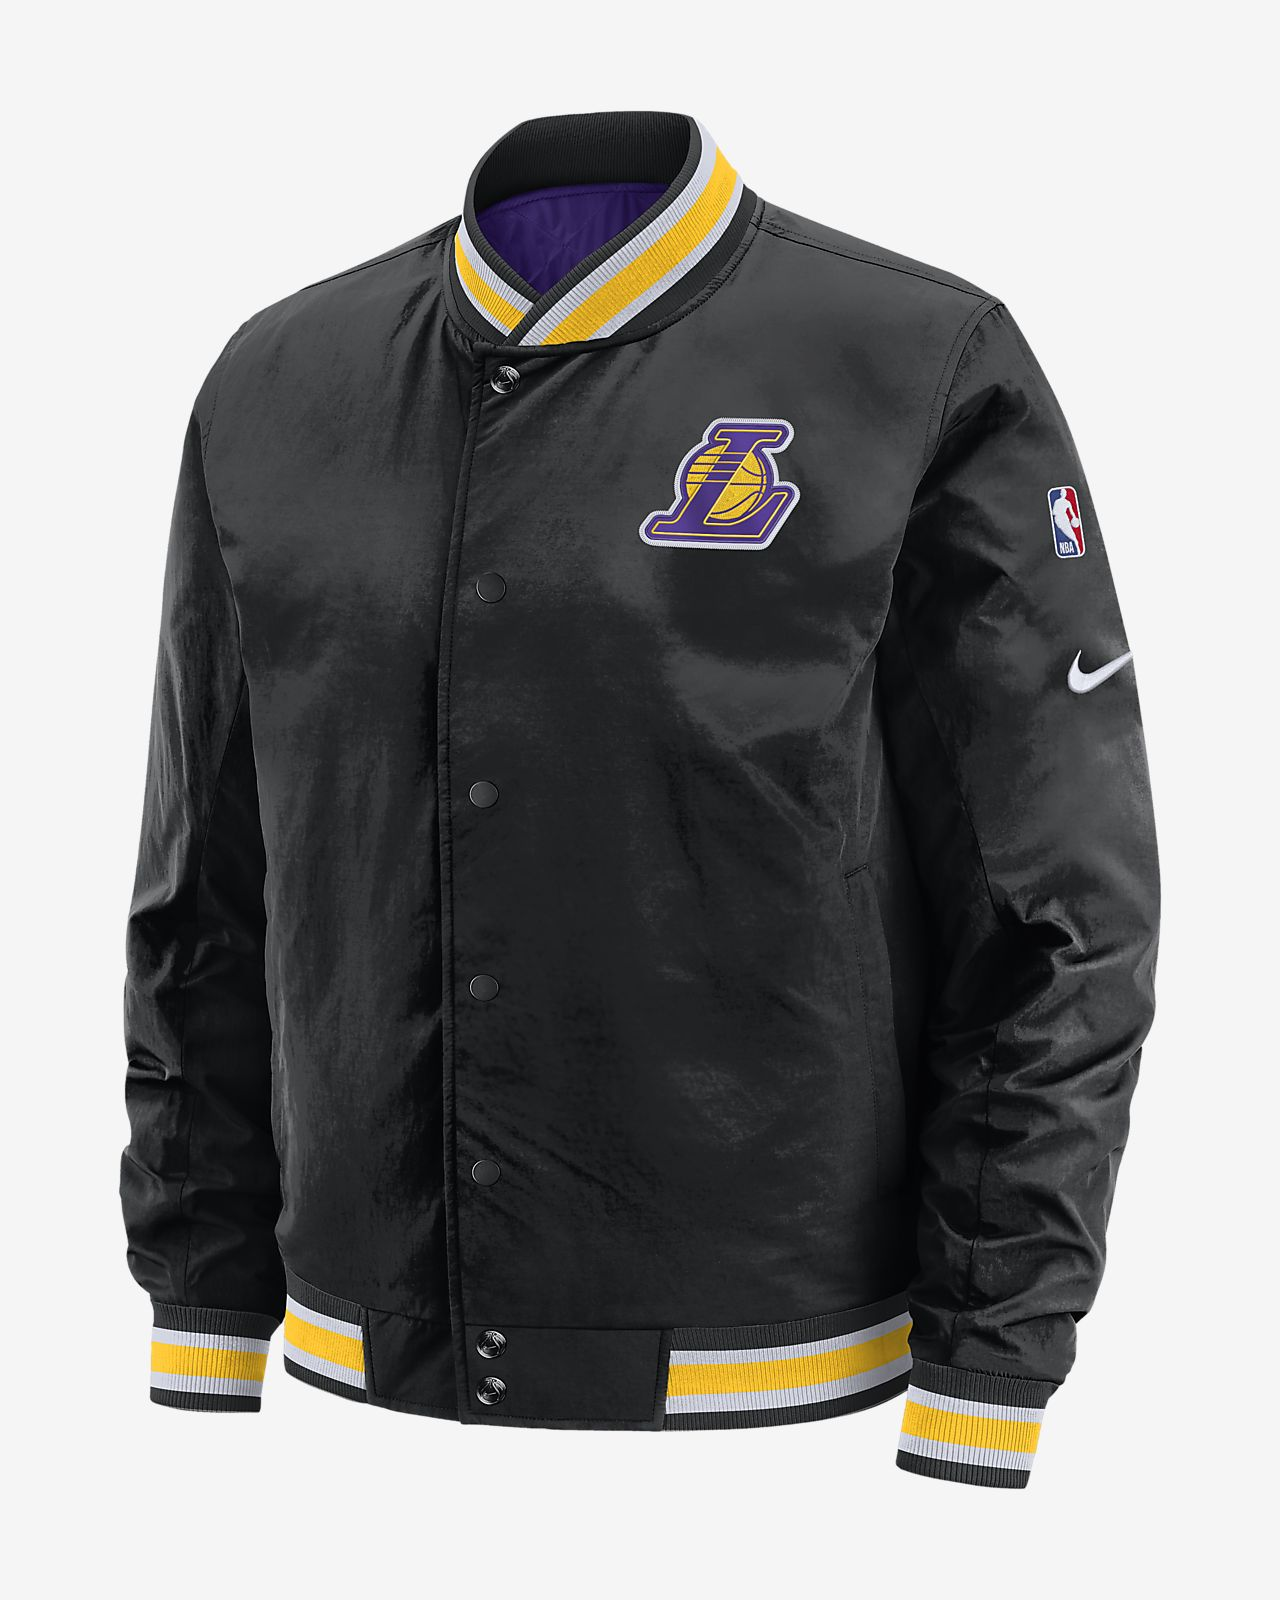 Veste réversible Nike NBA Los Angeles Lakers Courtside pour Homme